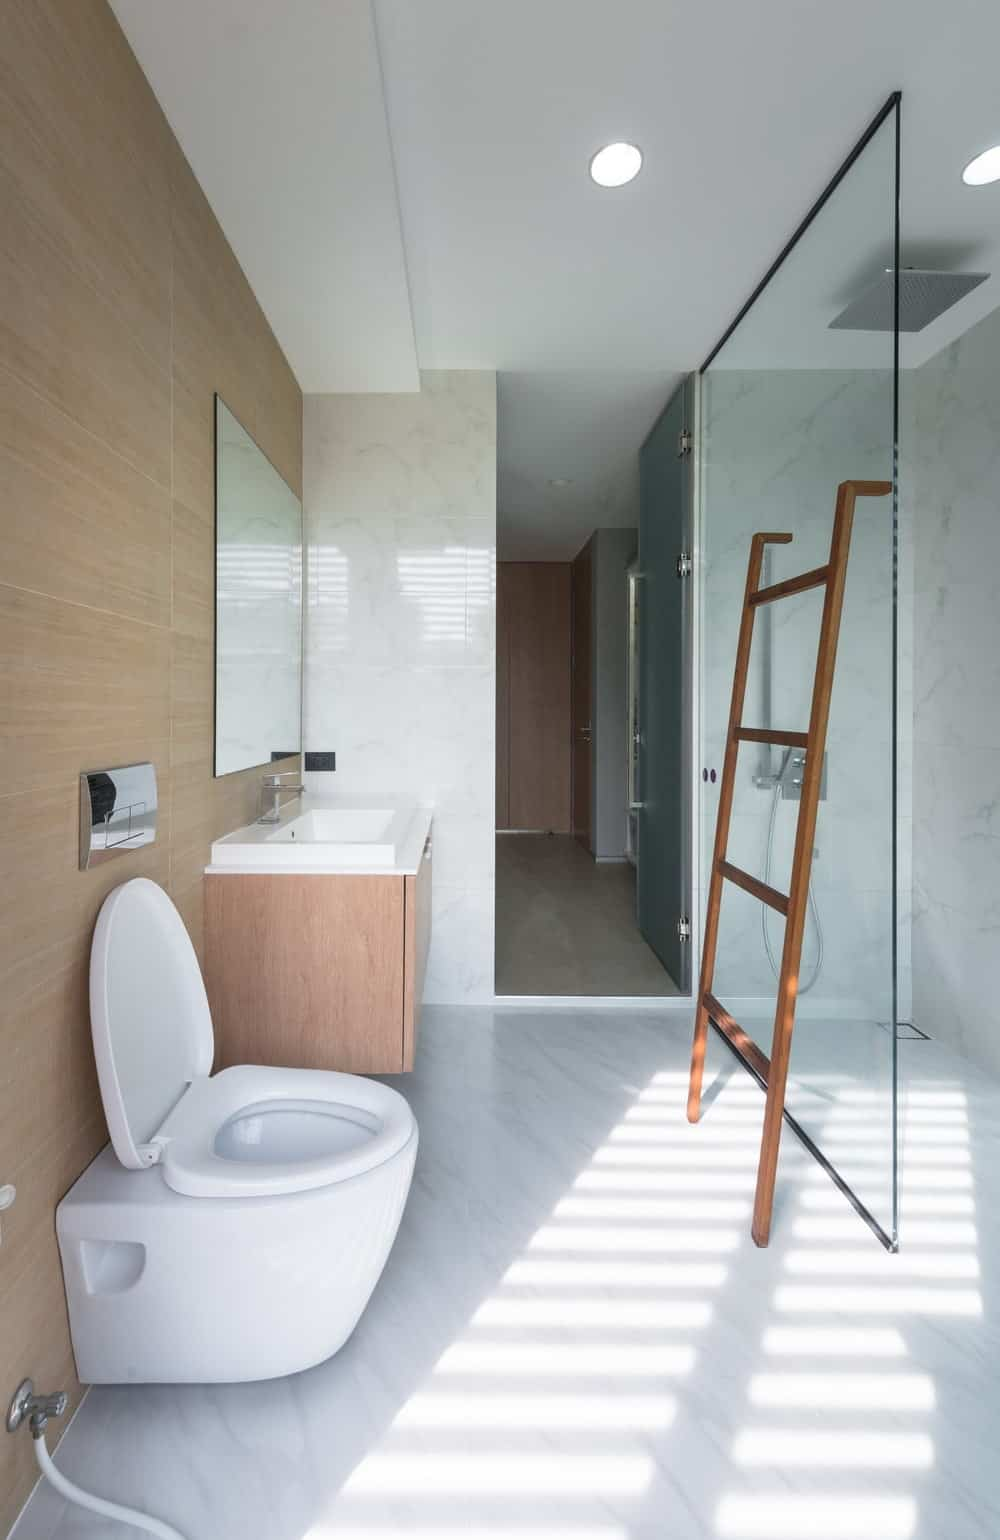 The bathroom has a wooden wall behind the modern white toilet beside the wooden vanity.